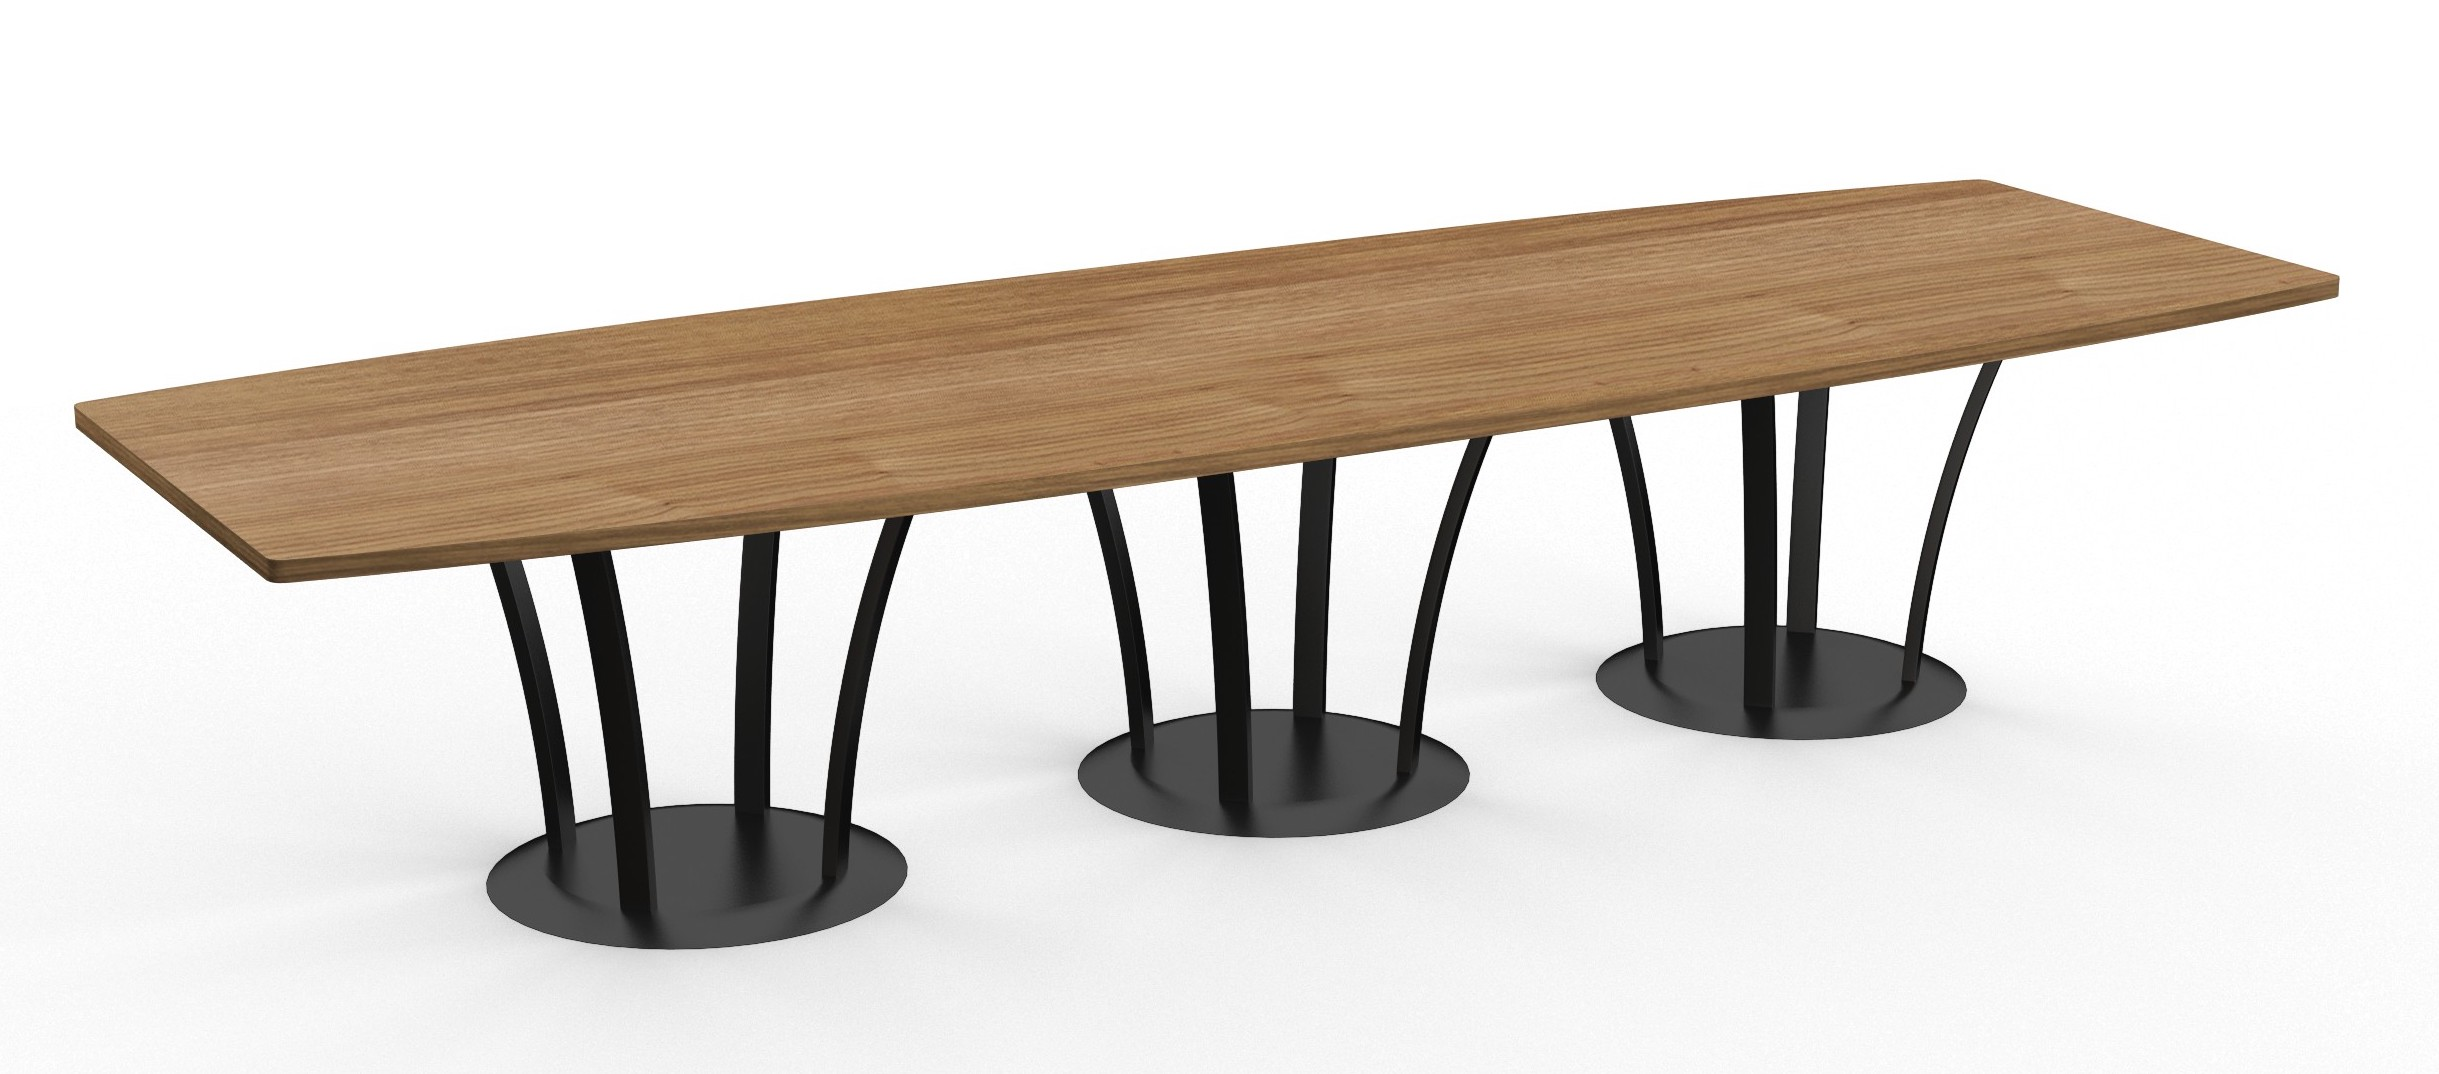 boat shaped structure table with metal fountain bases